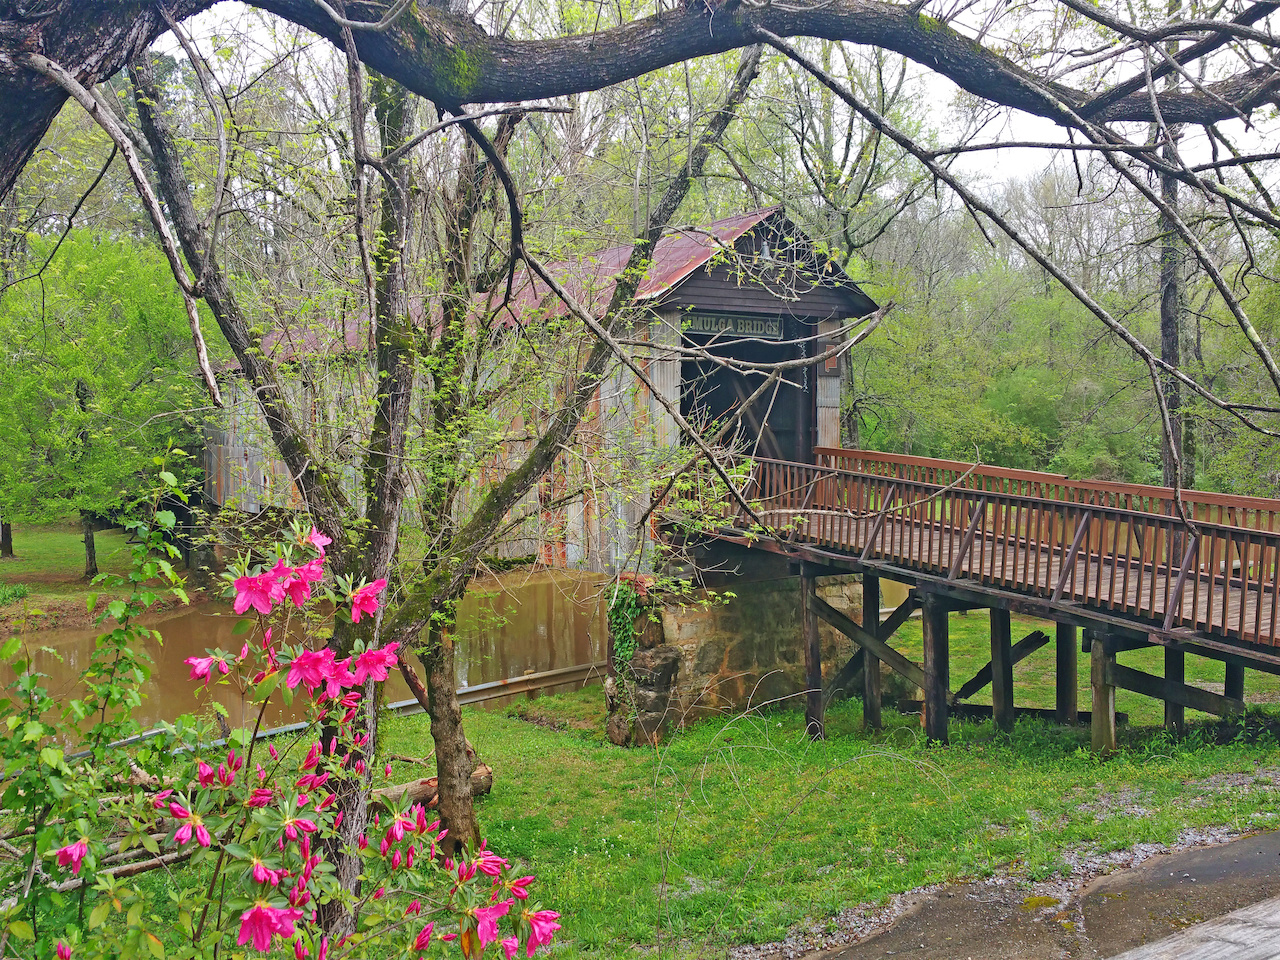 The Kymulga Bridge is at Kymulga Grist Mill & Park in Childersburg, Alabama.